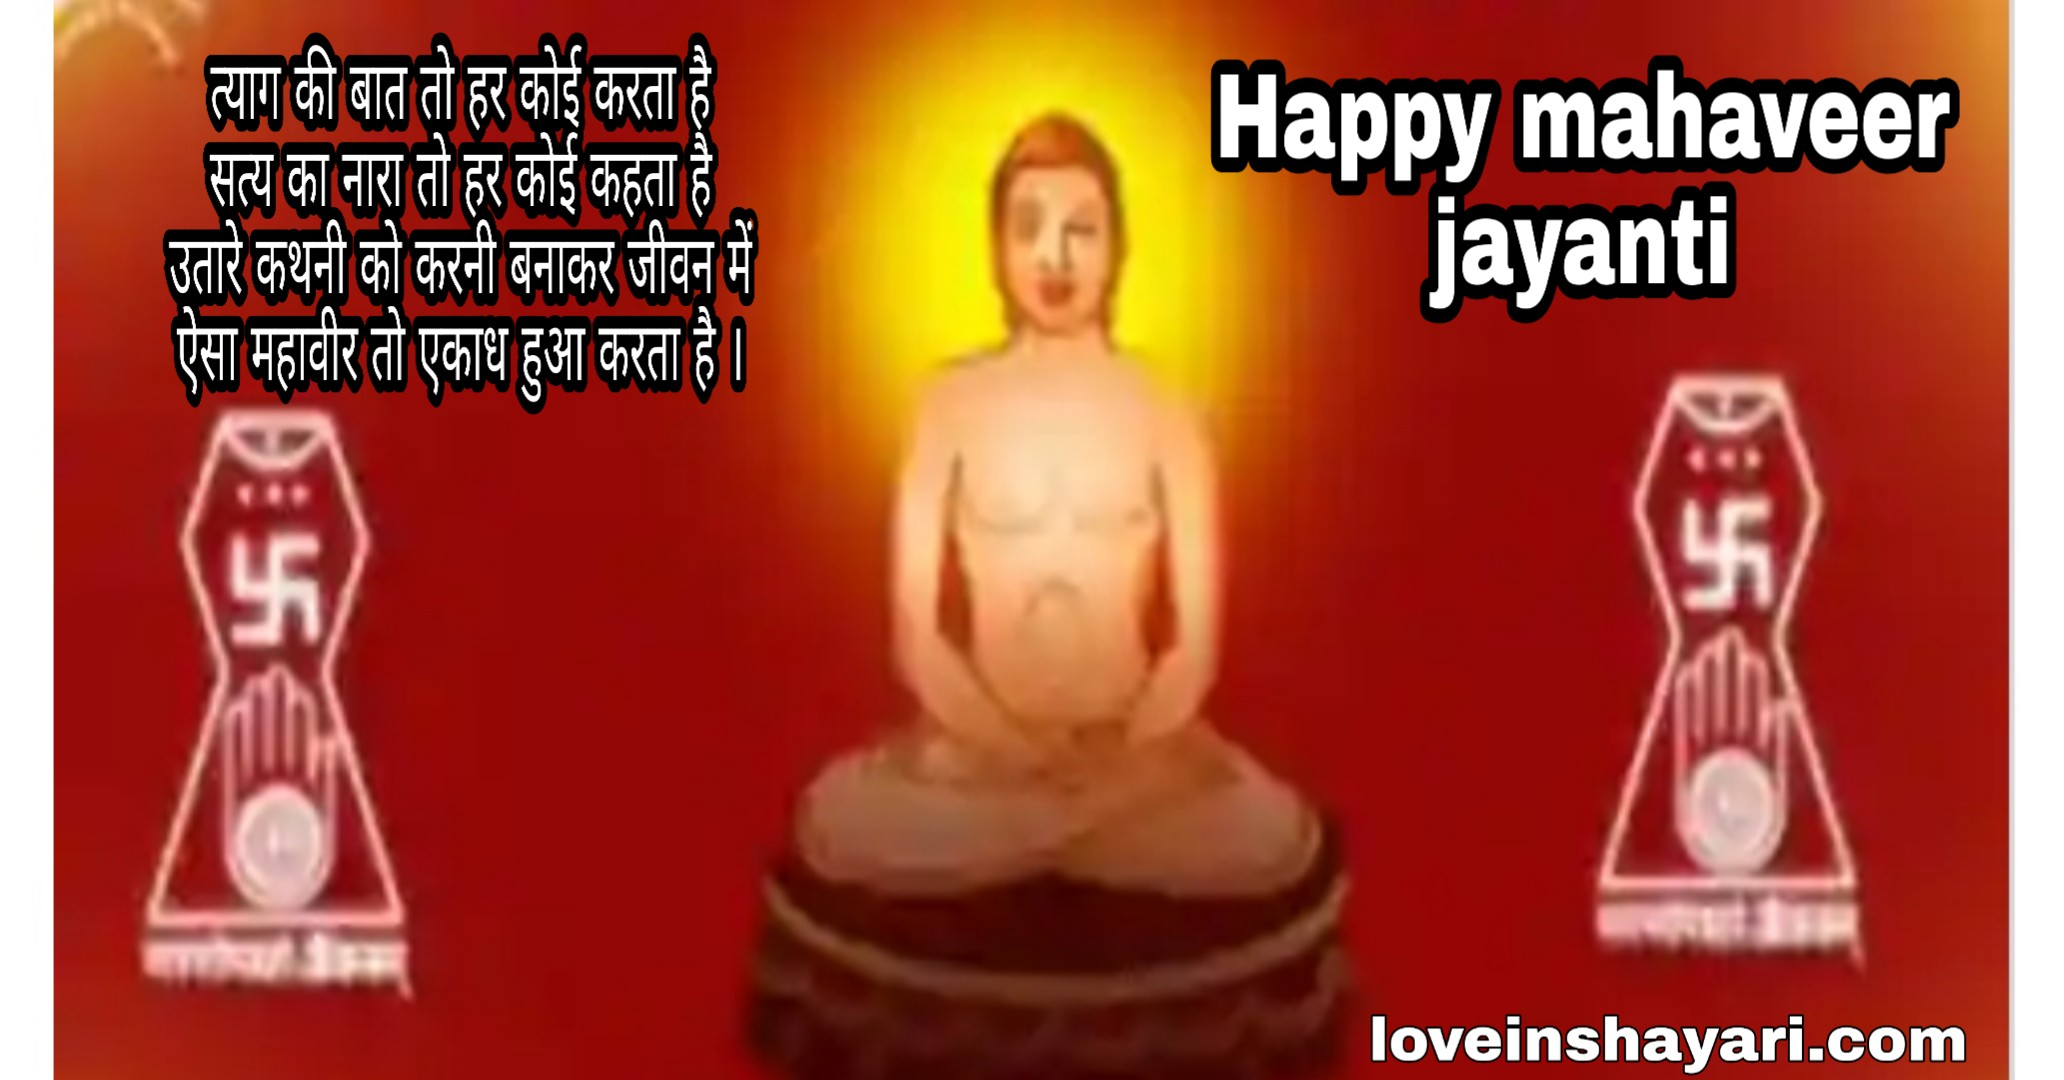 Photo of Mahaveer jayanti Images 2021 hd